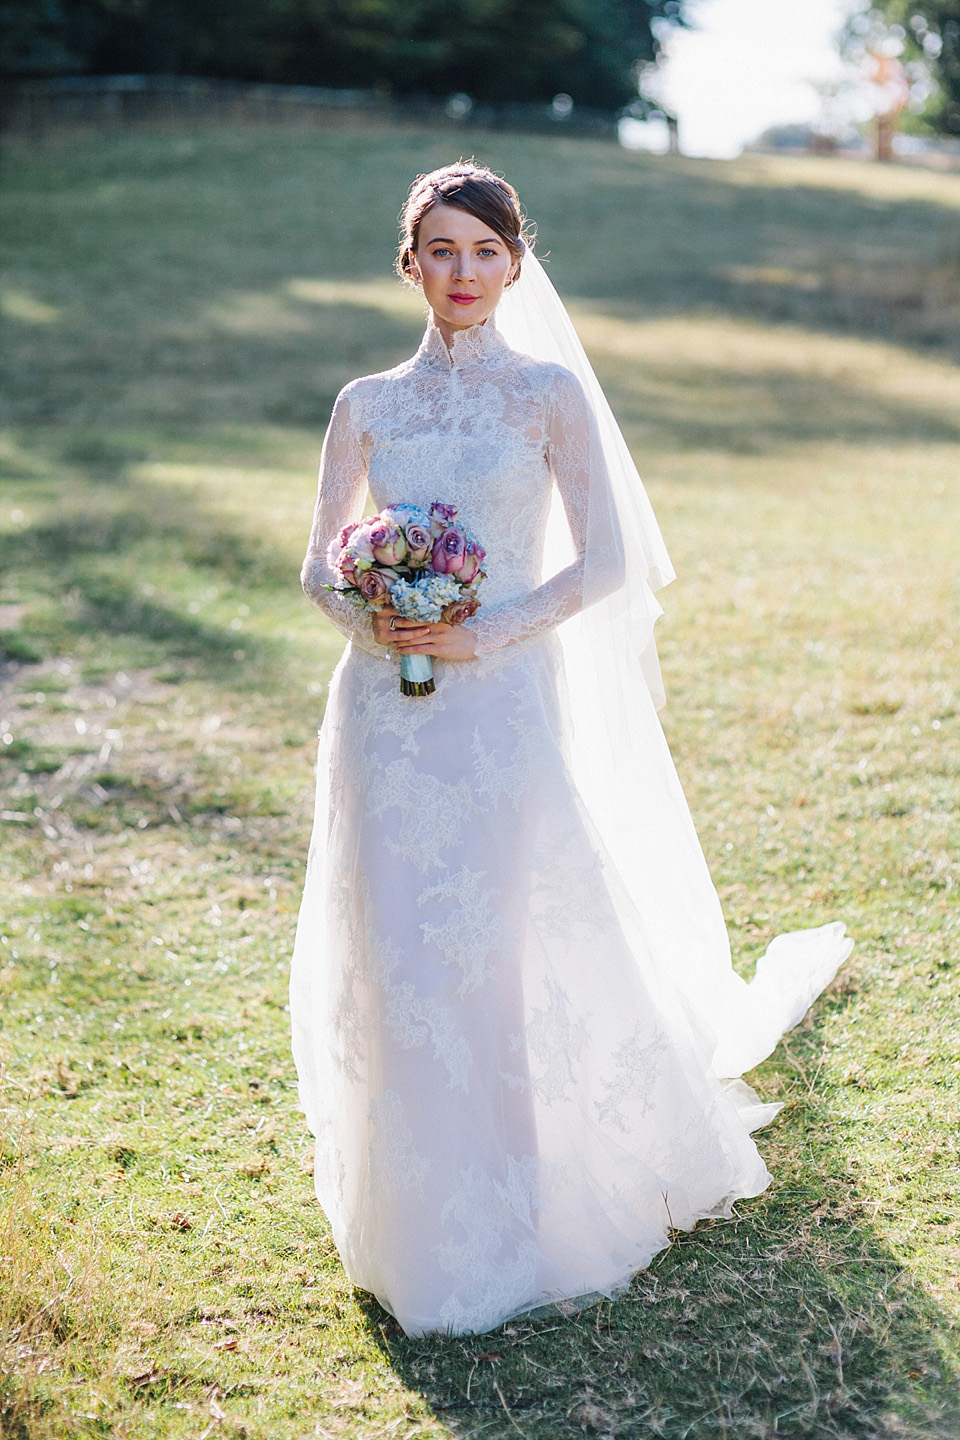 Grace Kelly Elegance and a Manuel Mota Gown for a Fairytale Wedding at Blenheim Palace